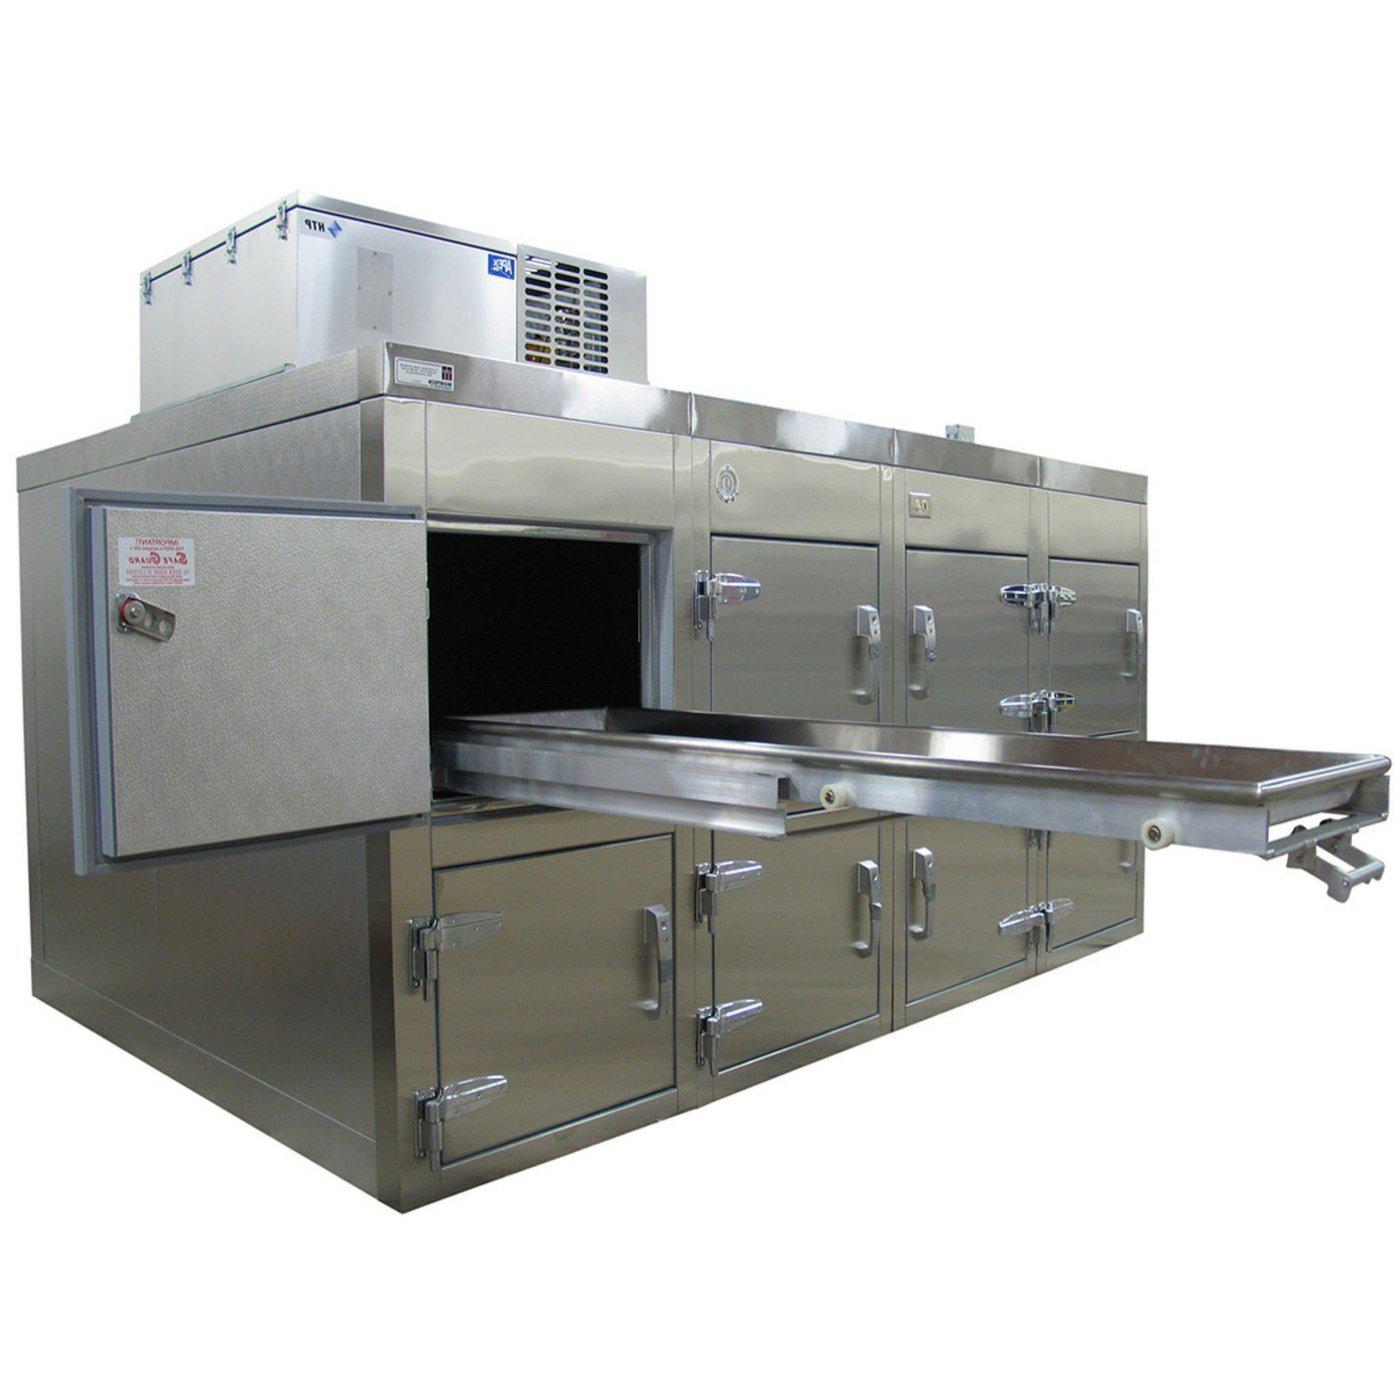 Eight Body Refrigerator-Refrigeration-Mortech Manufacturing Company Inc. Quality Stainless Steel Autopsy, Morgue, Funeral Home, Necropsy, Veterinary / Anatomy, Dissection Equipment and Accessories